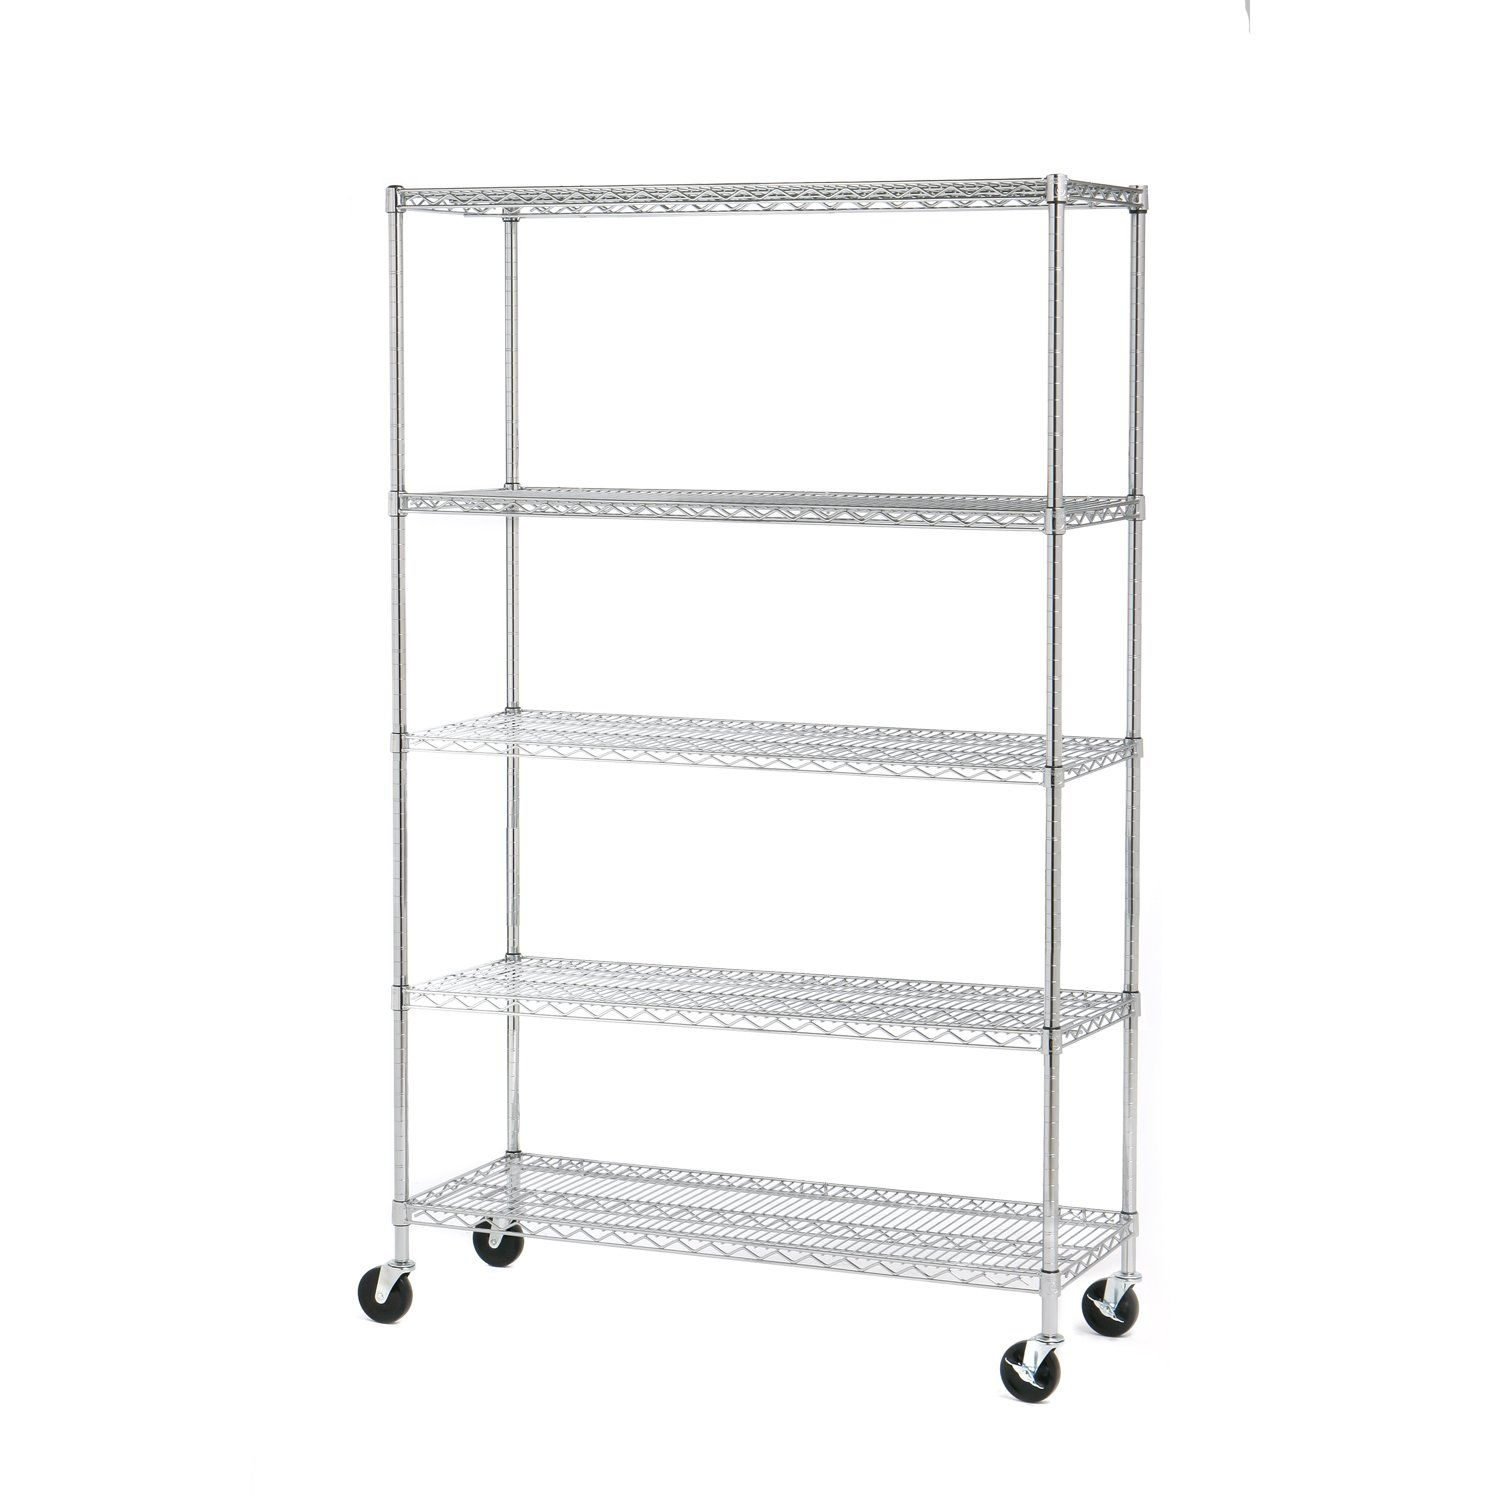 Seville Classics 5-Tier UltraZinc NSF Steel Wire Shelving /w Wheels ...